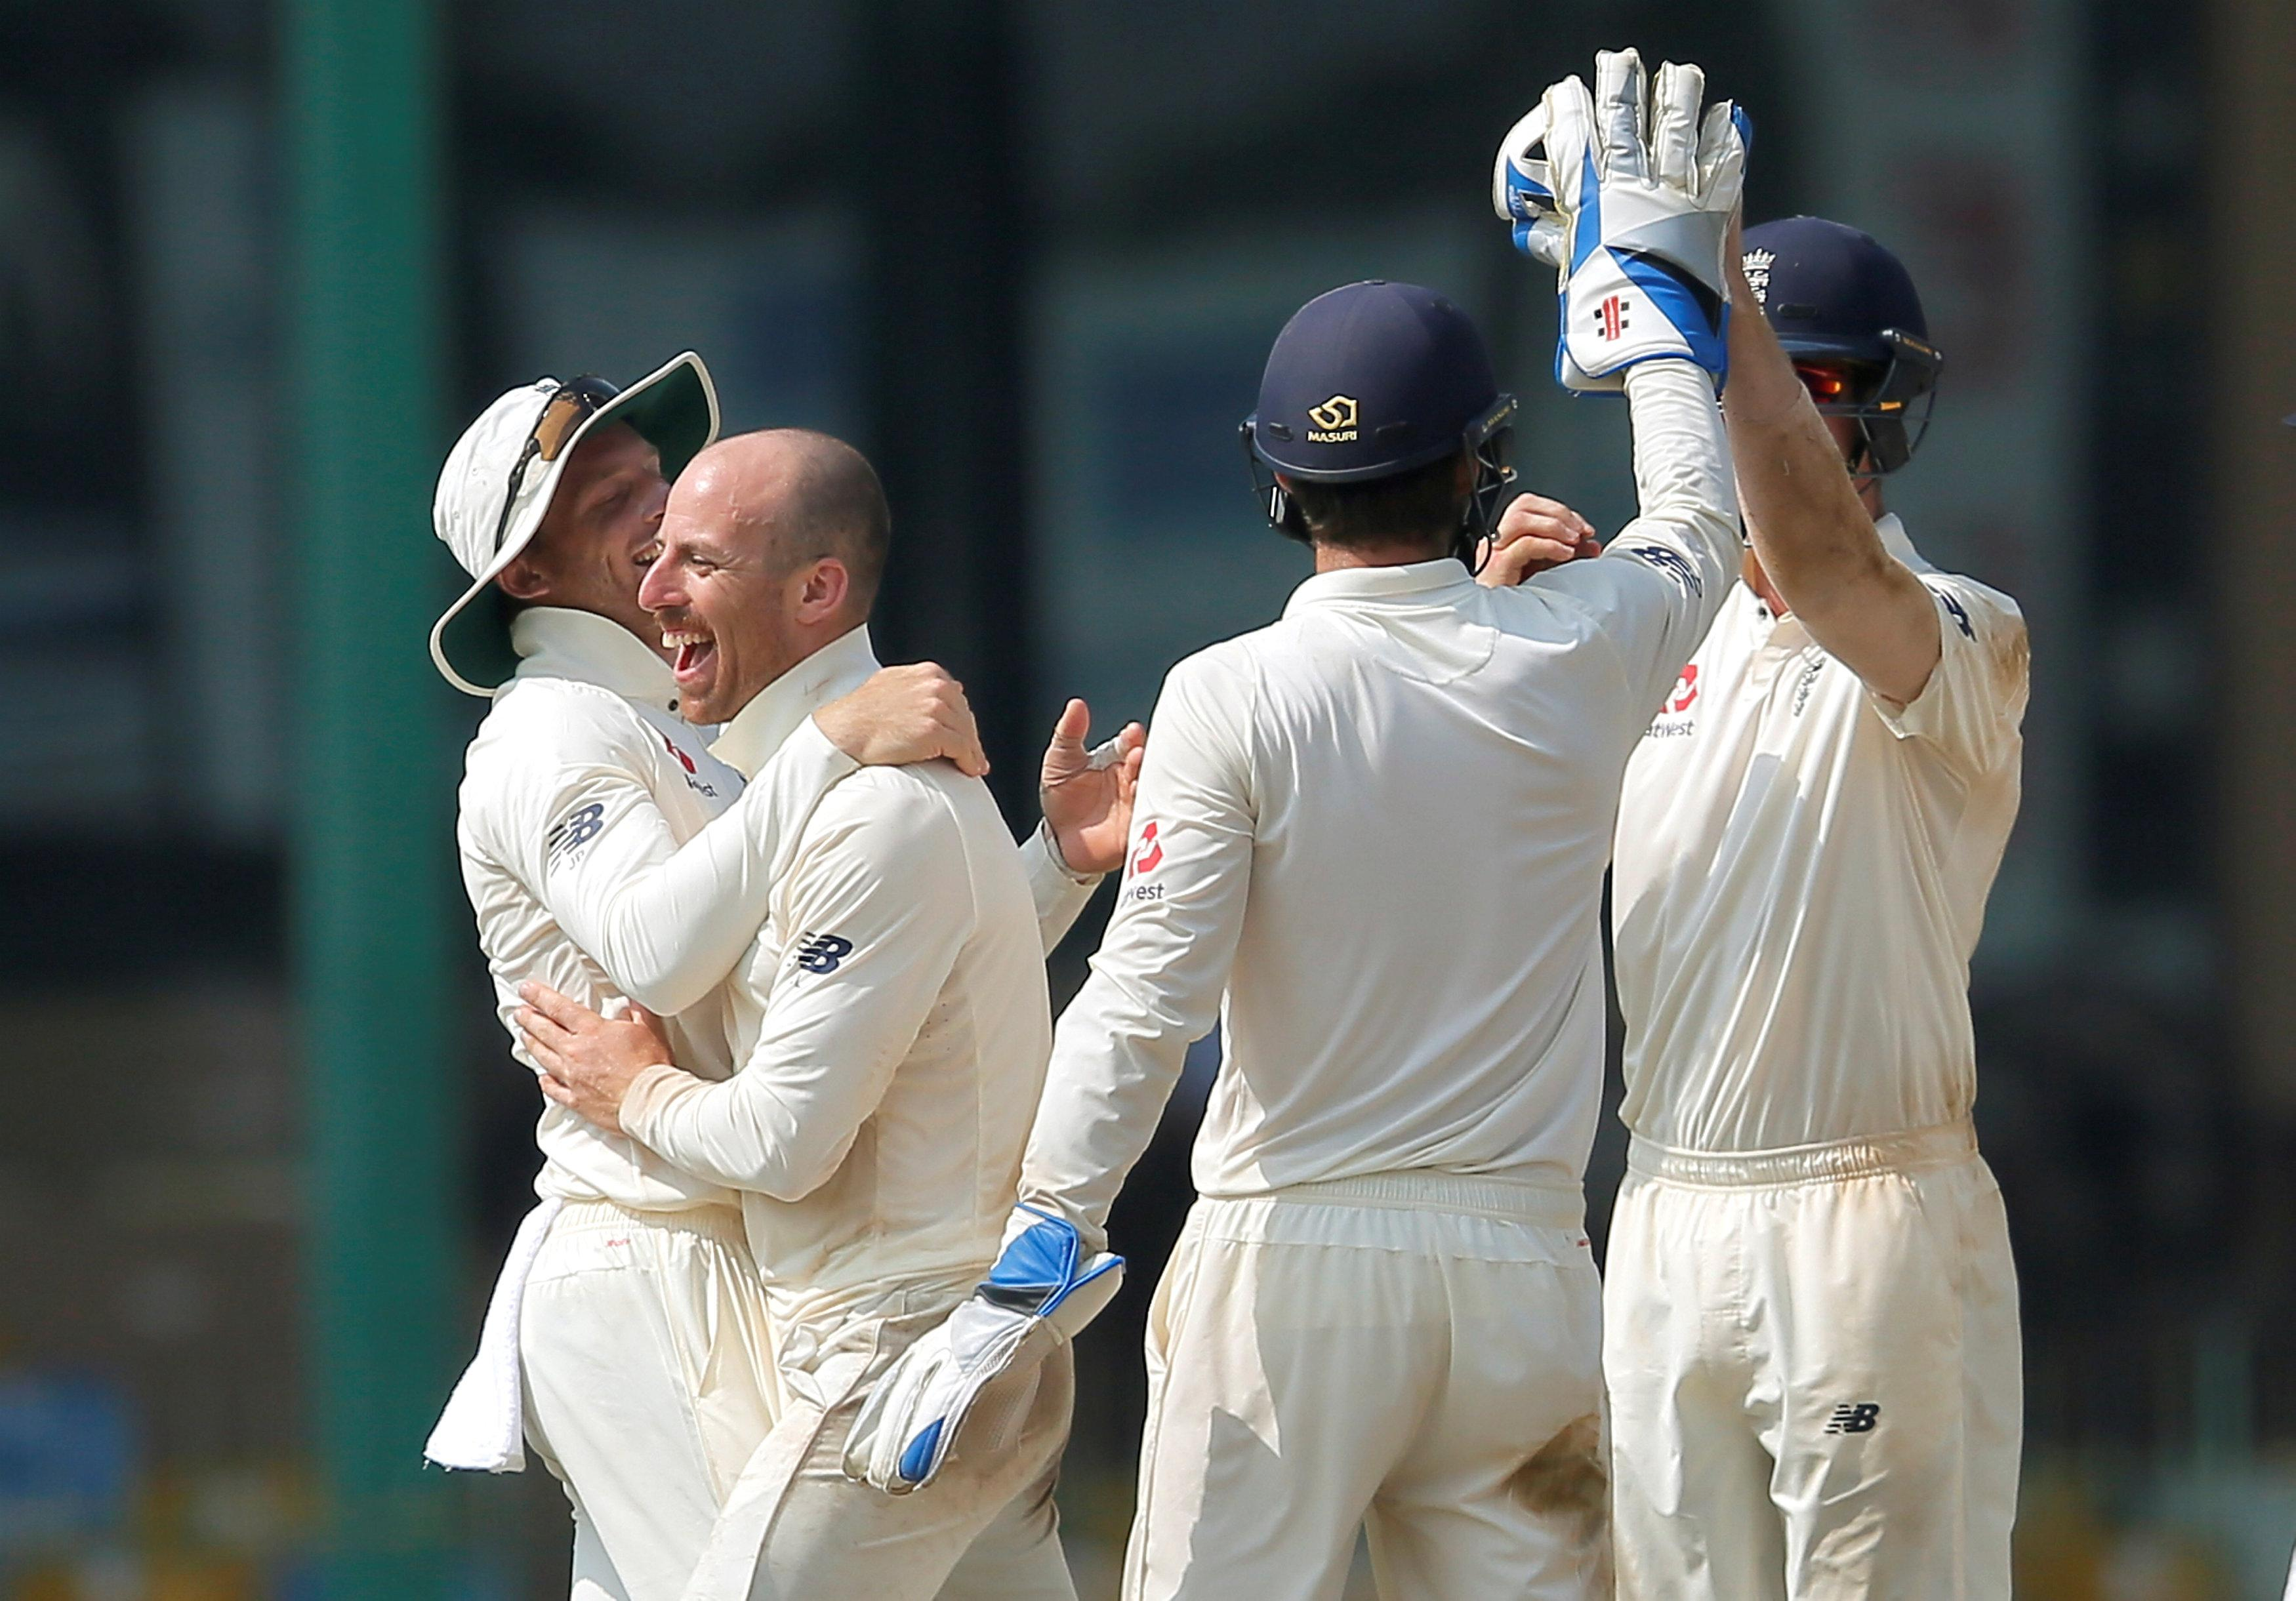 Jack Leach took the final wicket as England eventually clinched the win